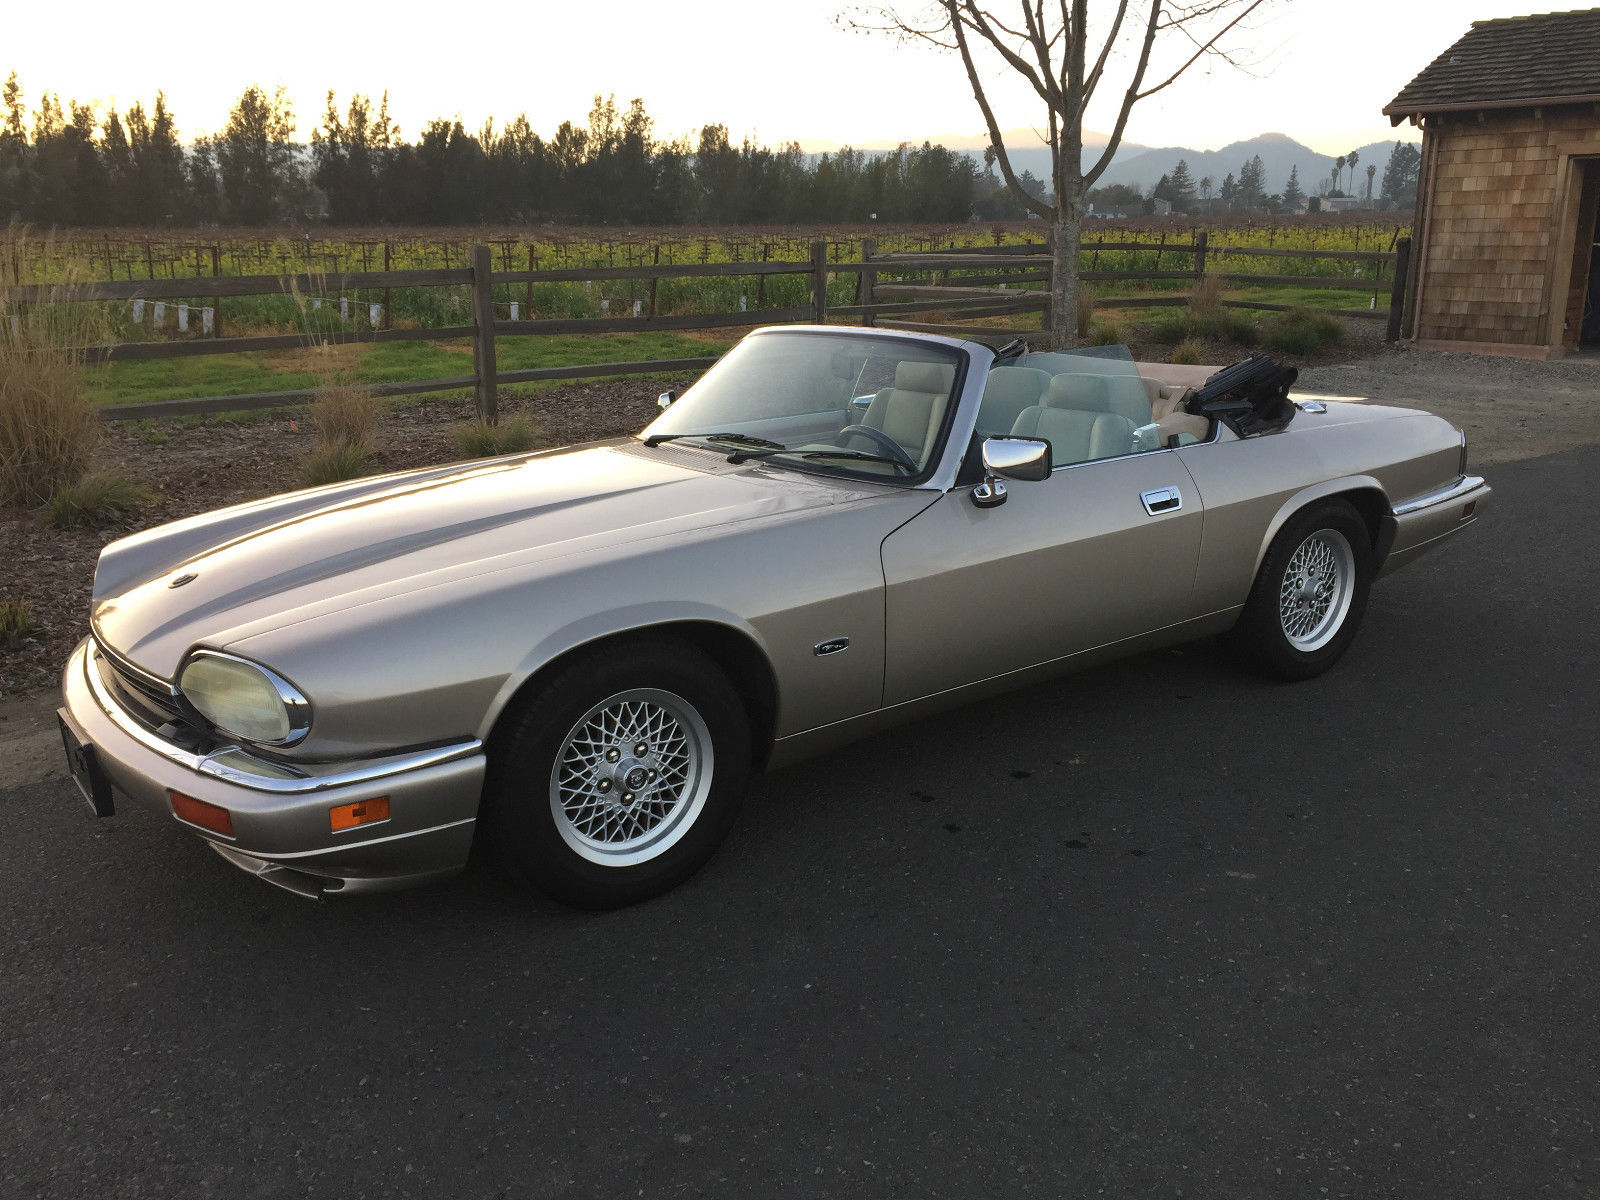 1994 jaguar xjs convertible 4 0l v6 champagne on beige leather 46k miles classic jaguar xjs. Black Bedroom Furniture Sets. Home Design Ideas